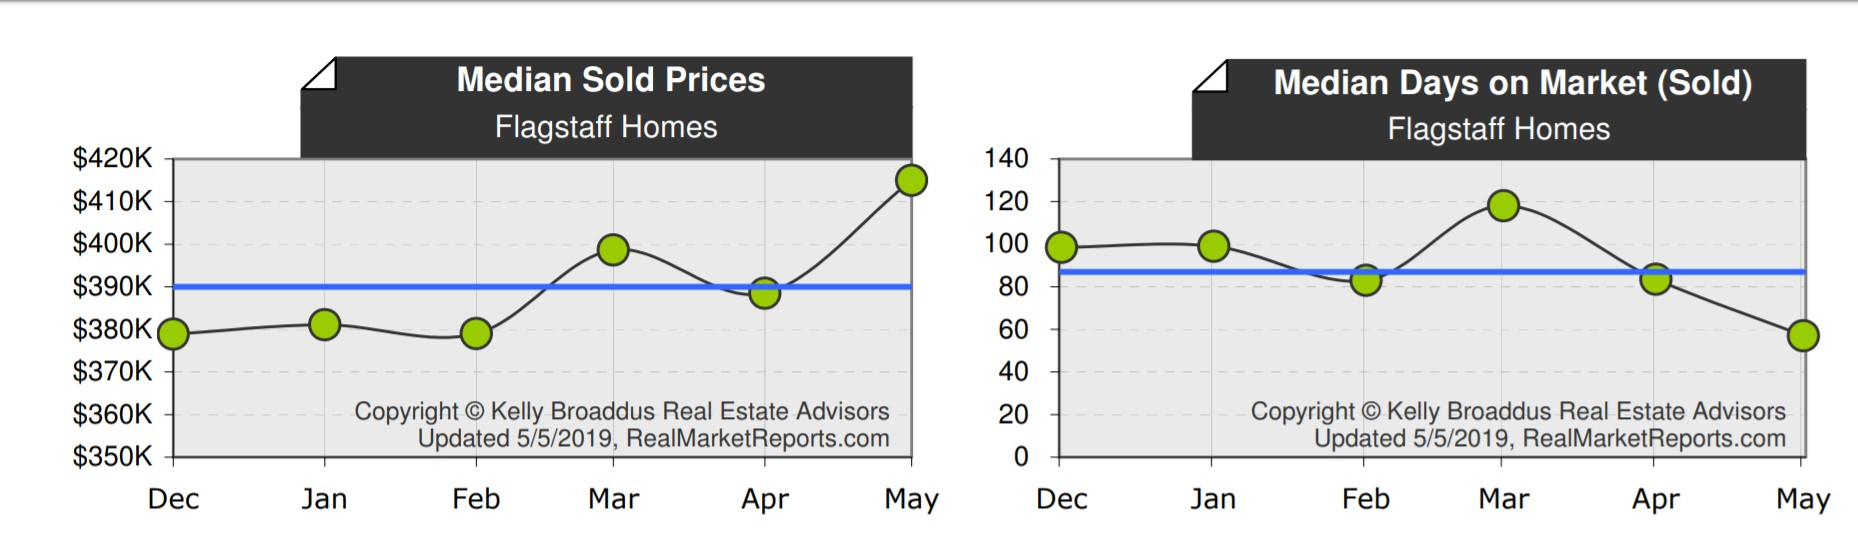 aPRIL 2019 Home Price and DOM Real Estate Stats